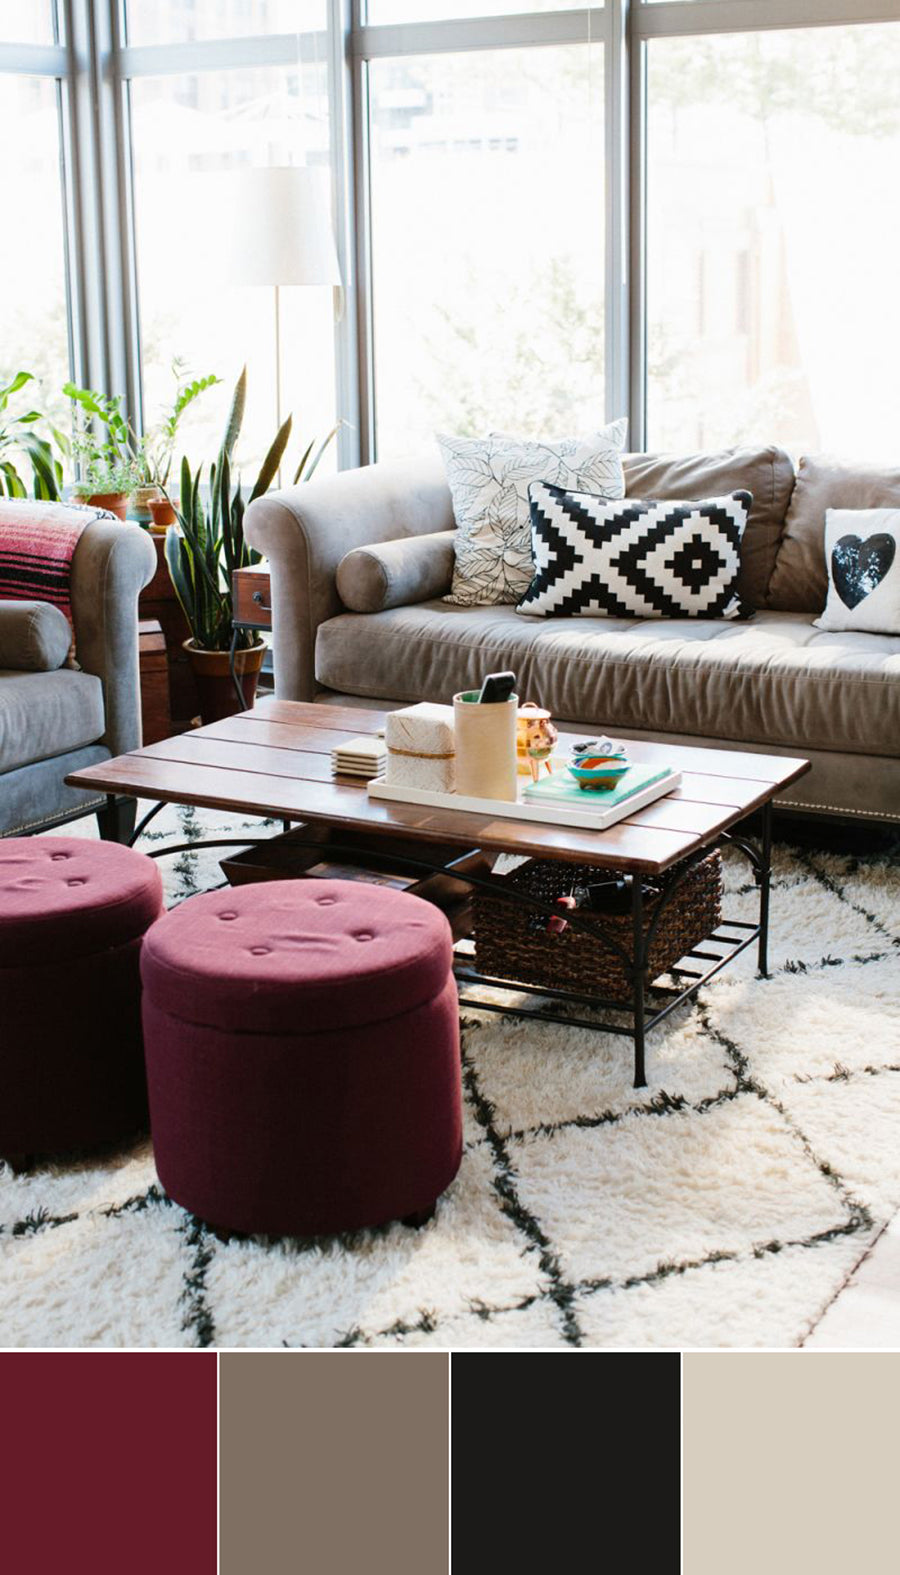 These Burgundy Ottomans Create A Beautiful Pop Of Color In An Otherwise Neutral Room Light Carpet And Pattern Pillows Help The Feel Open